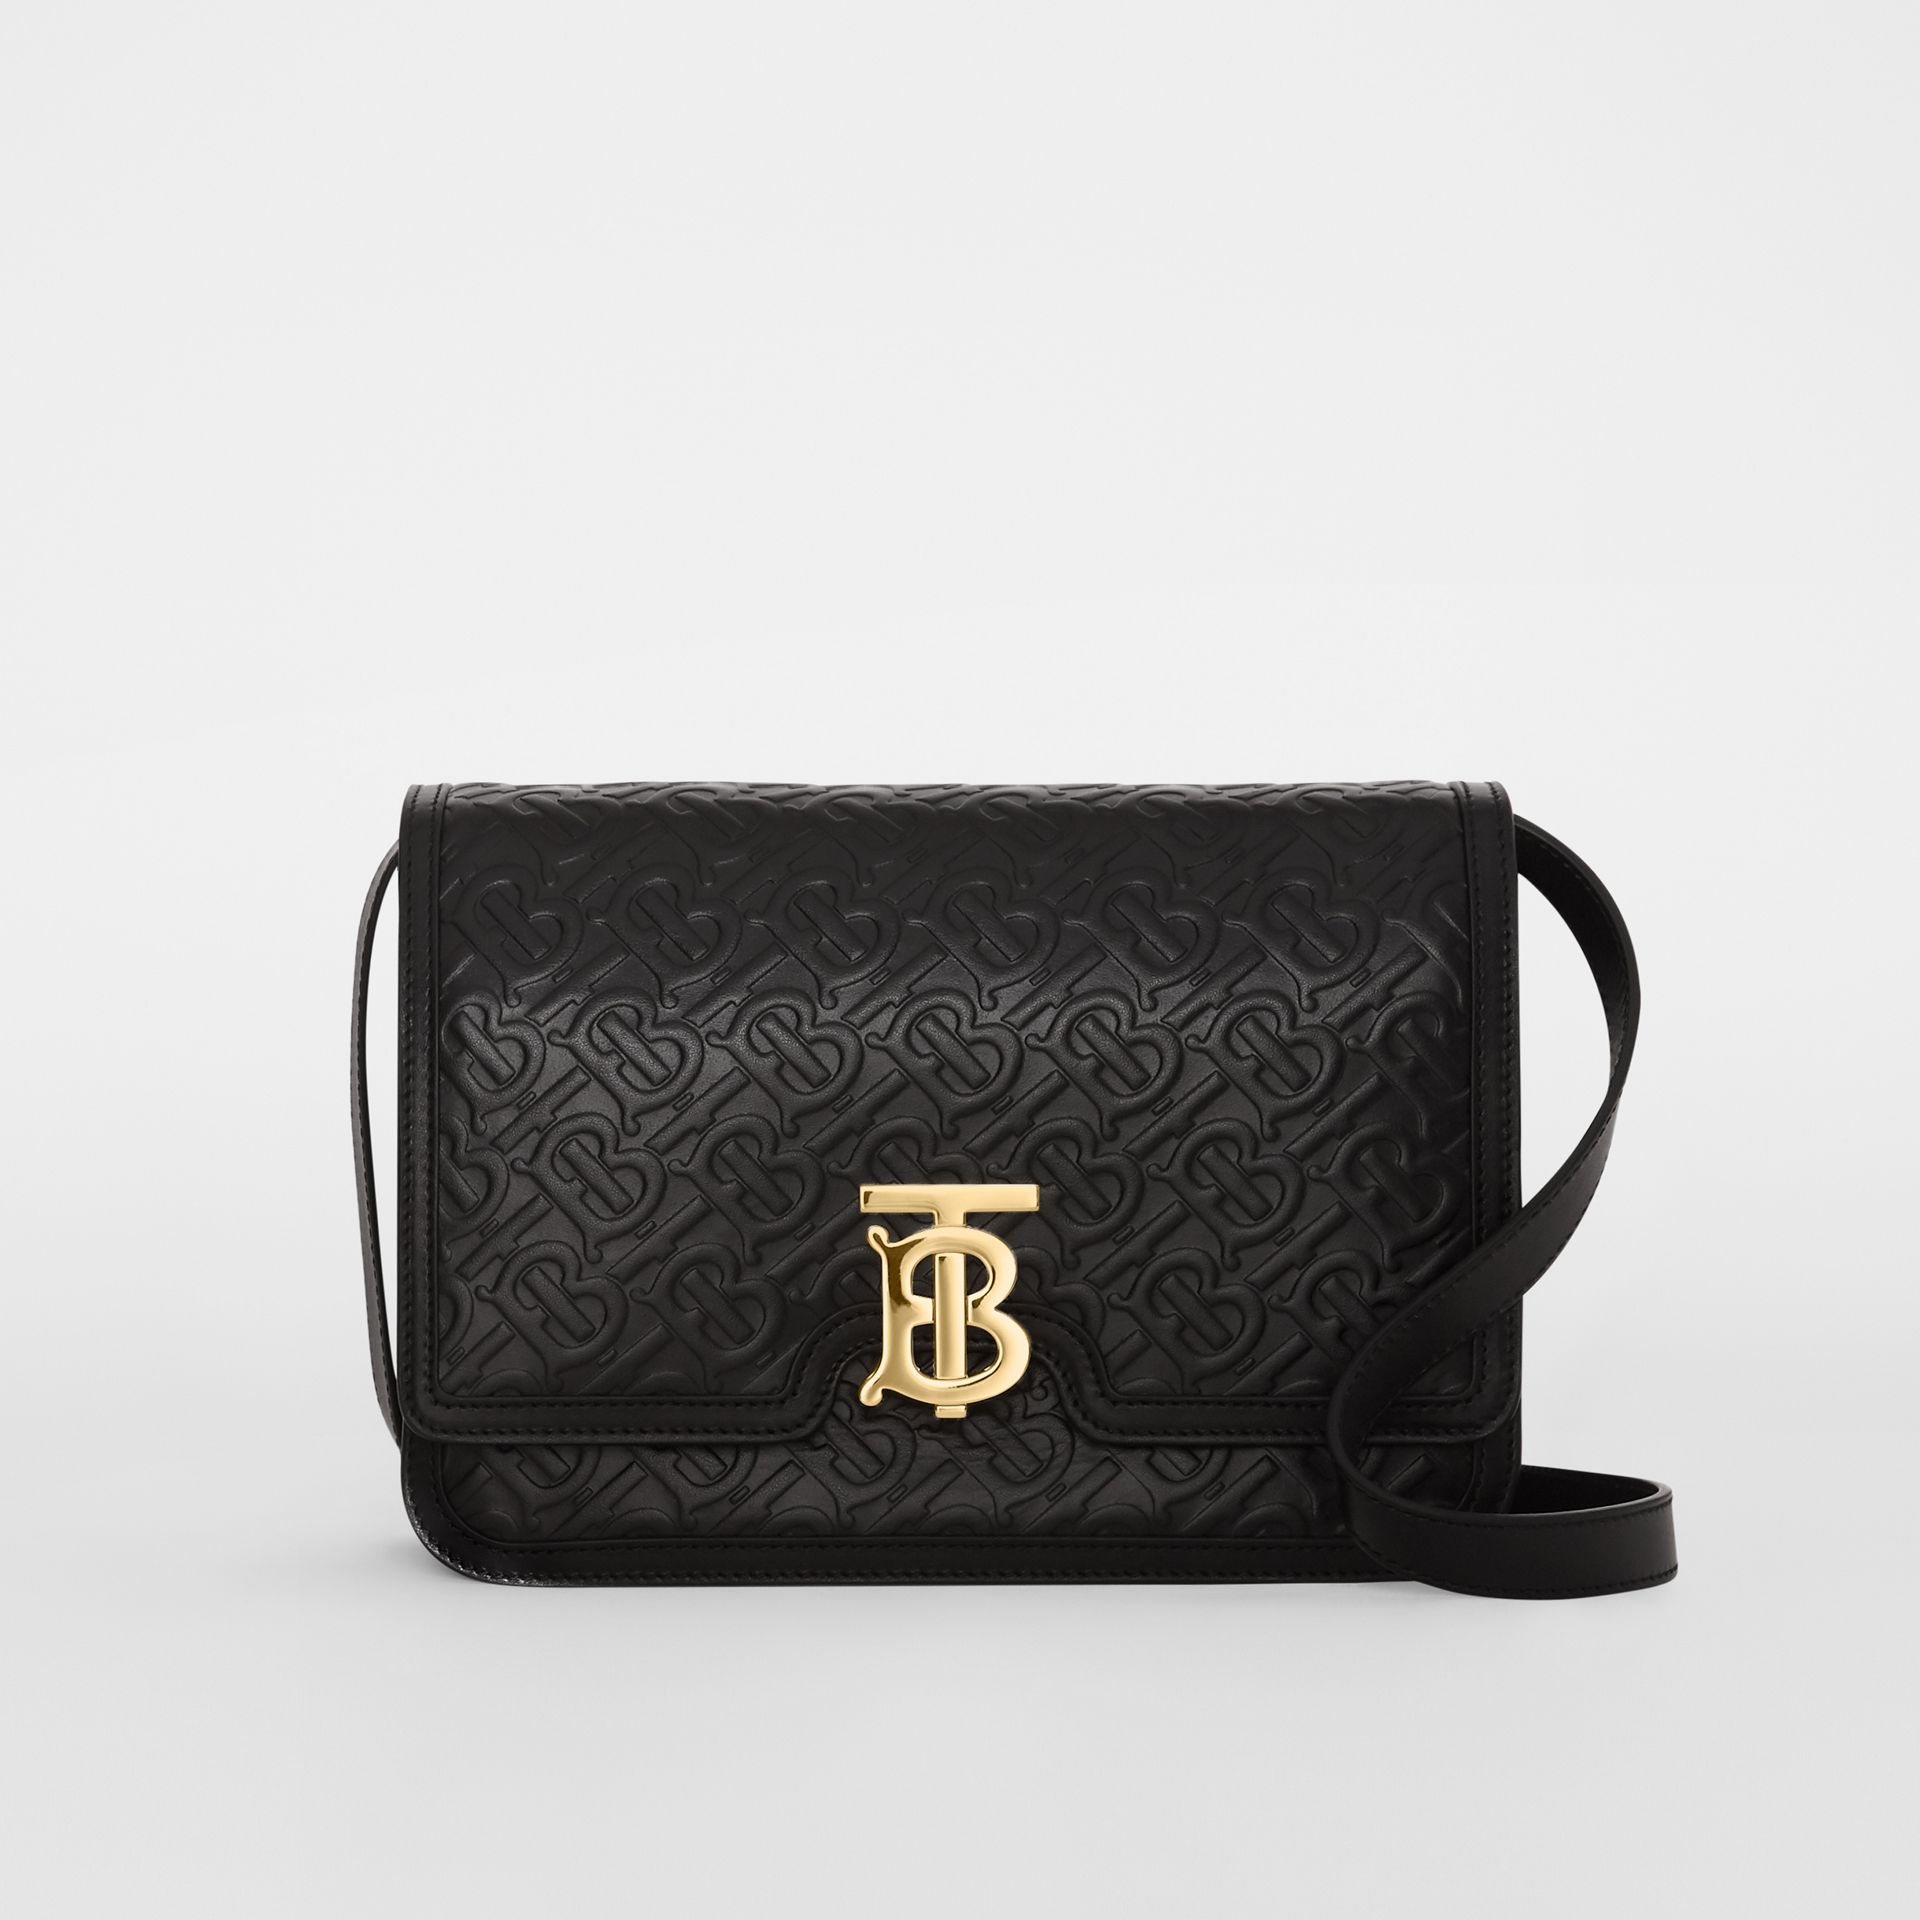 Medium Monogram Leather TB Bag in Black - Women | Burberry United States - gallery image 0